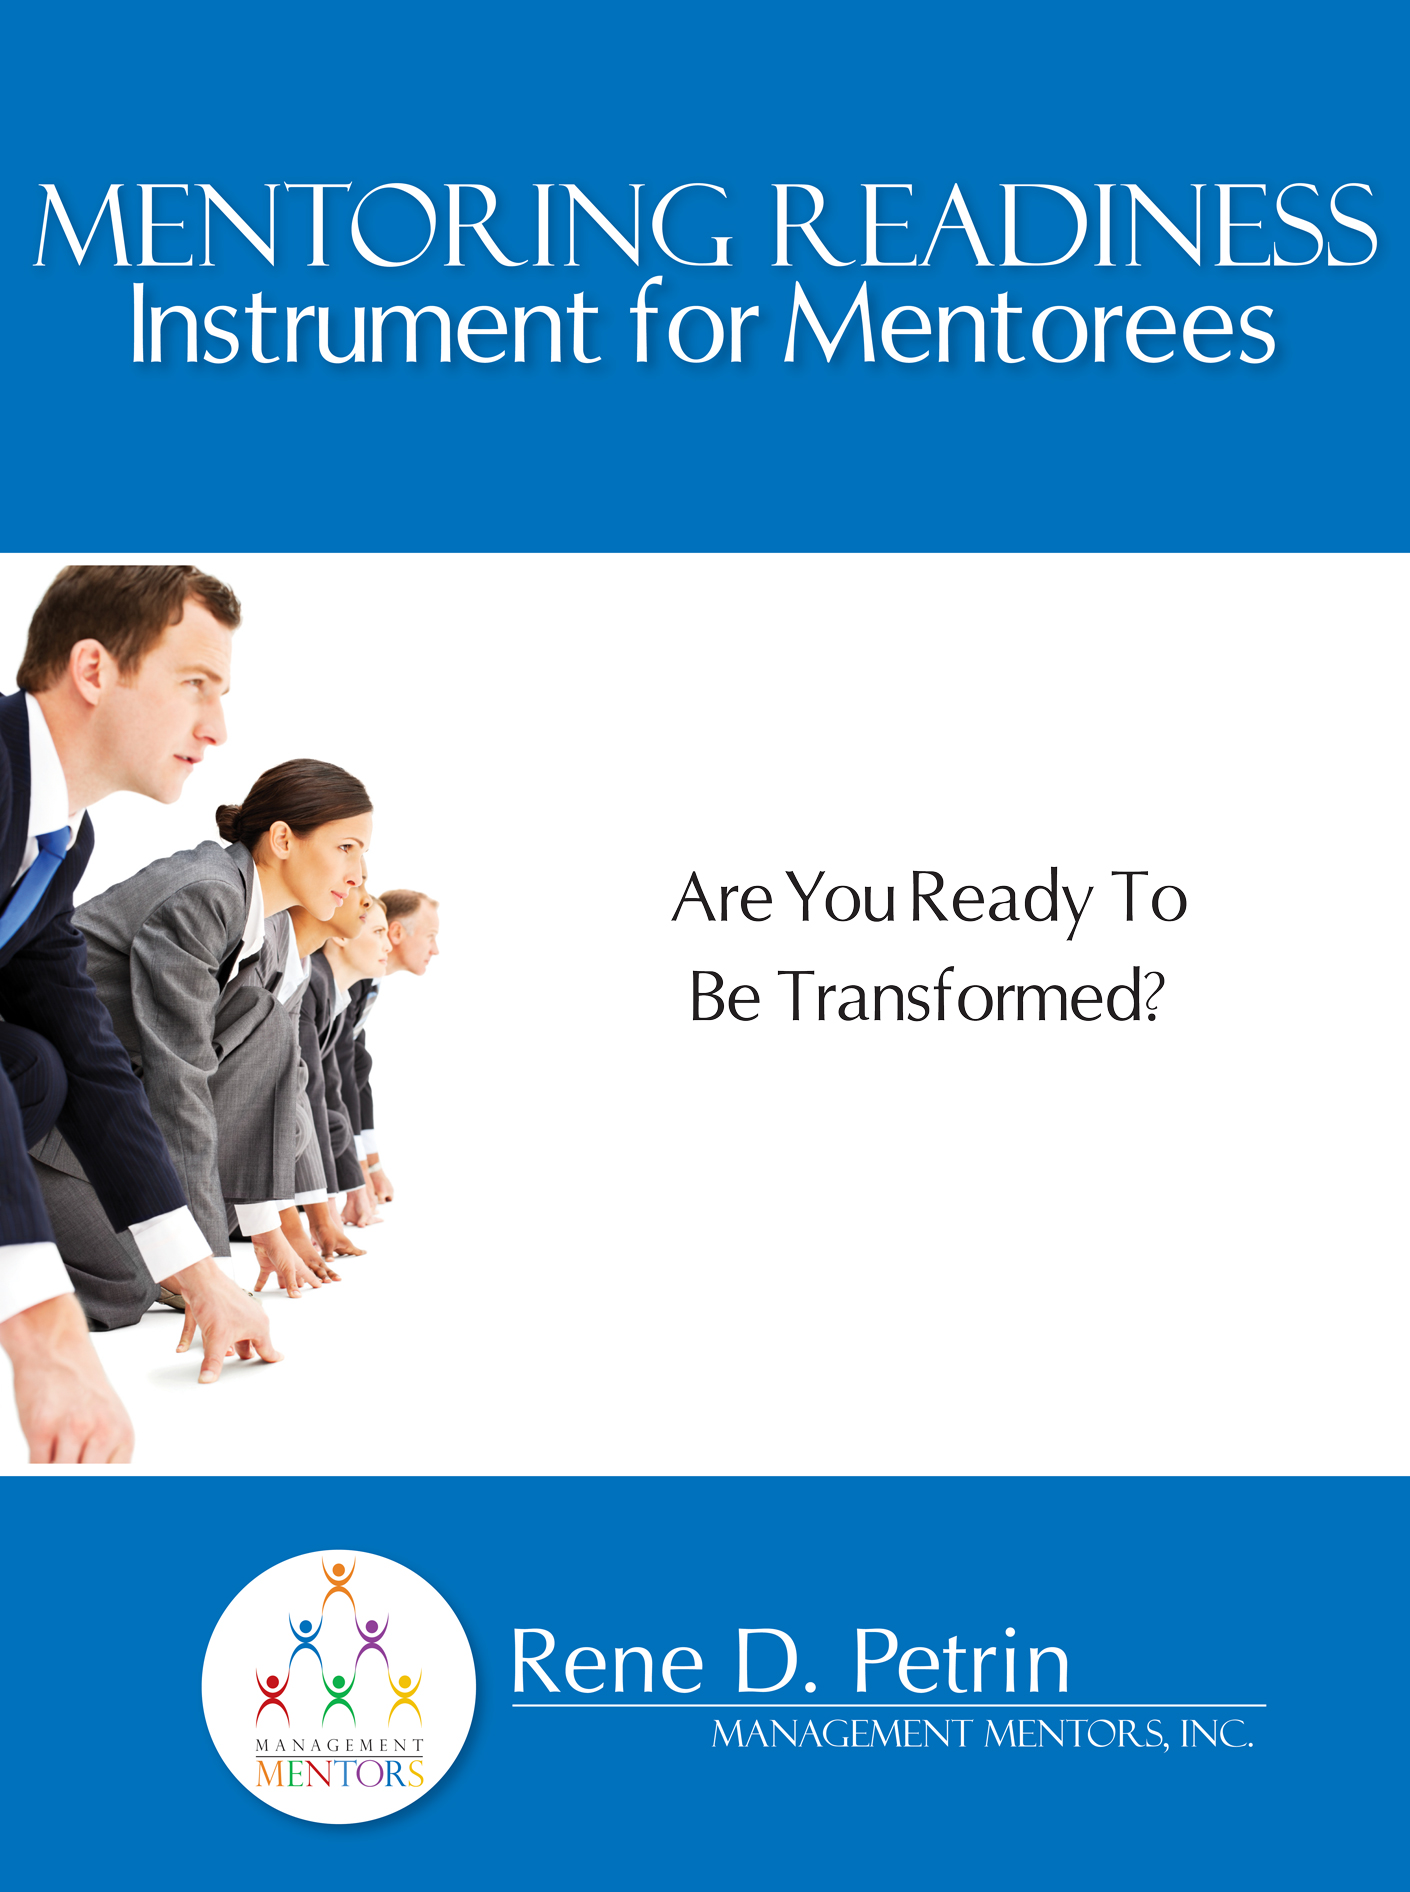 Mentoree Readiness Instrument